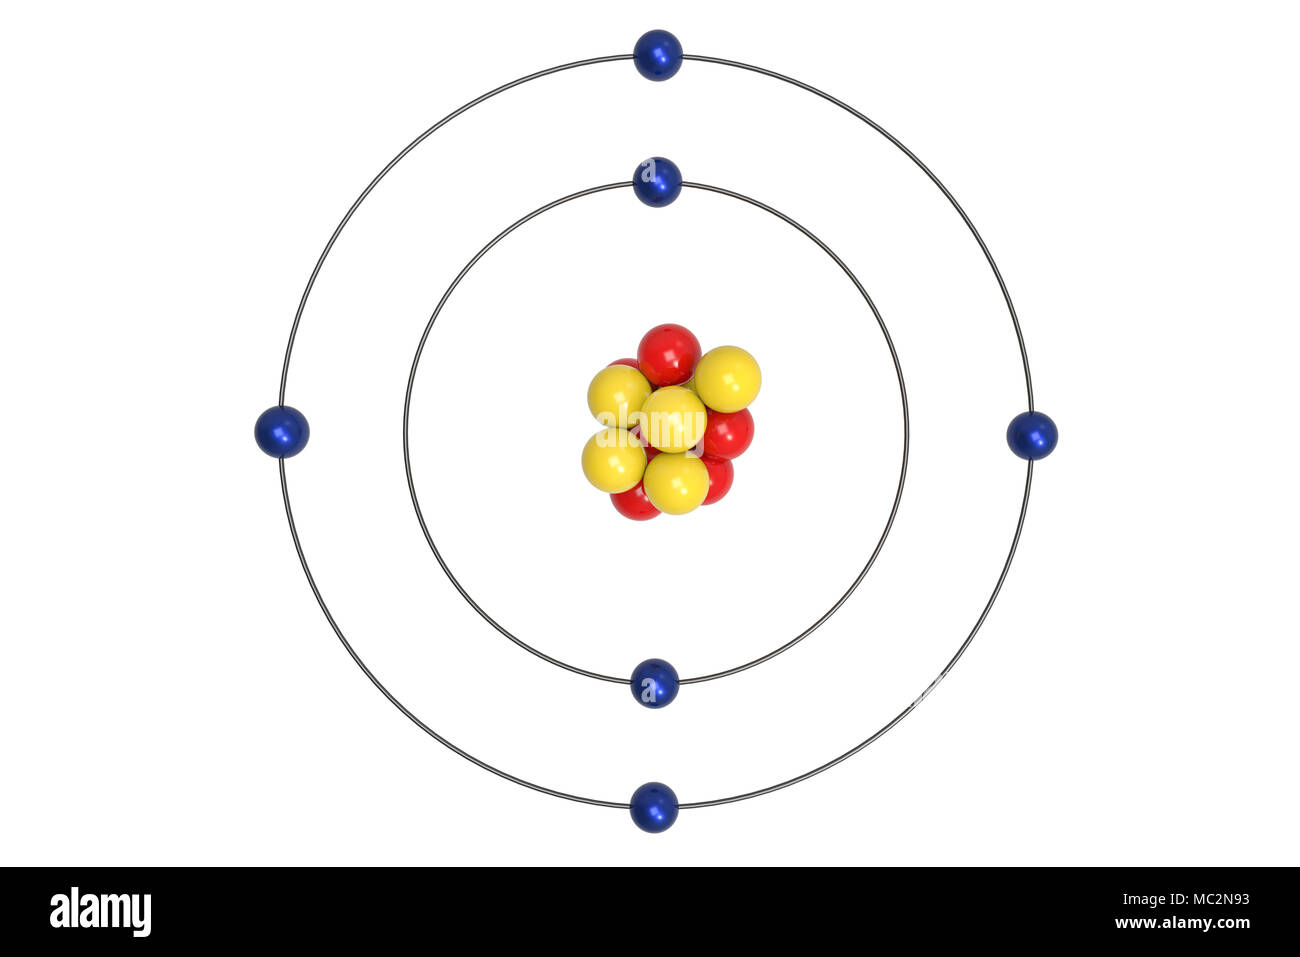 hight resolution of carbon atom bohr model with proton neutron and electron 3d illustration stock image